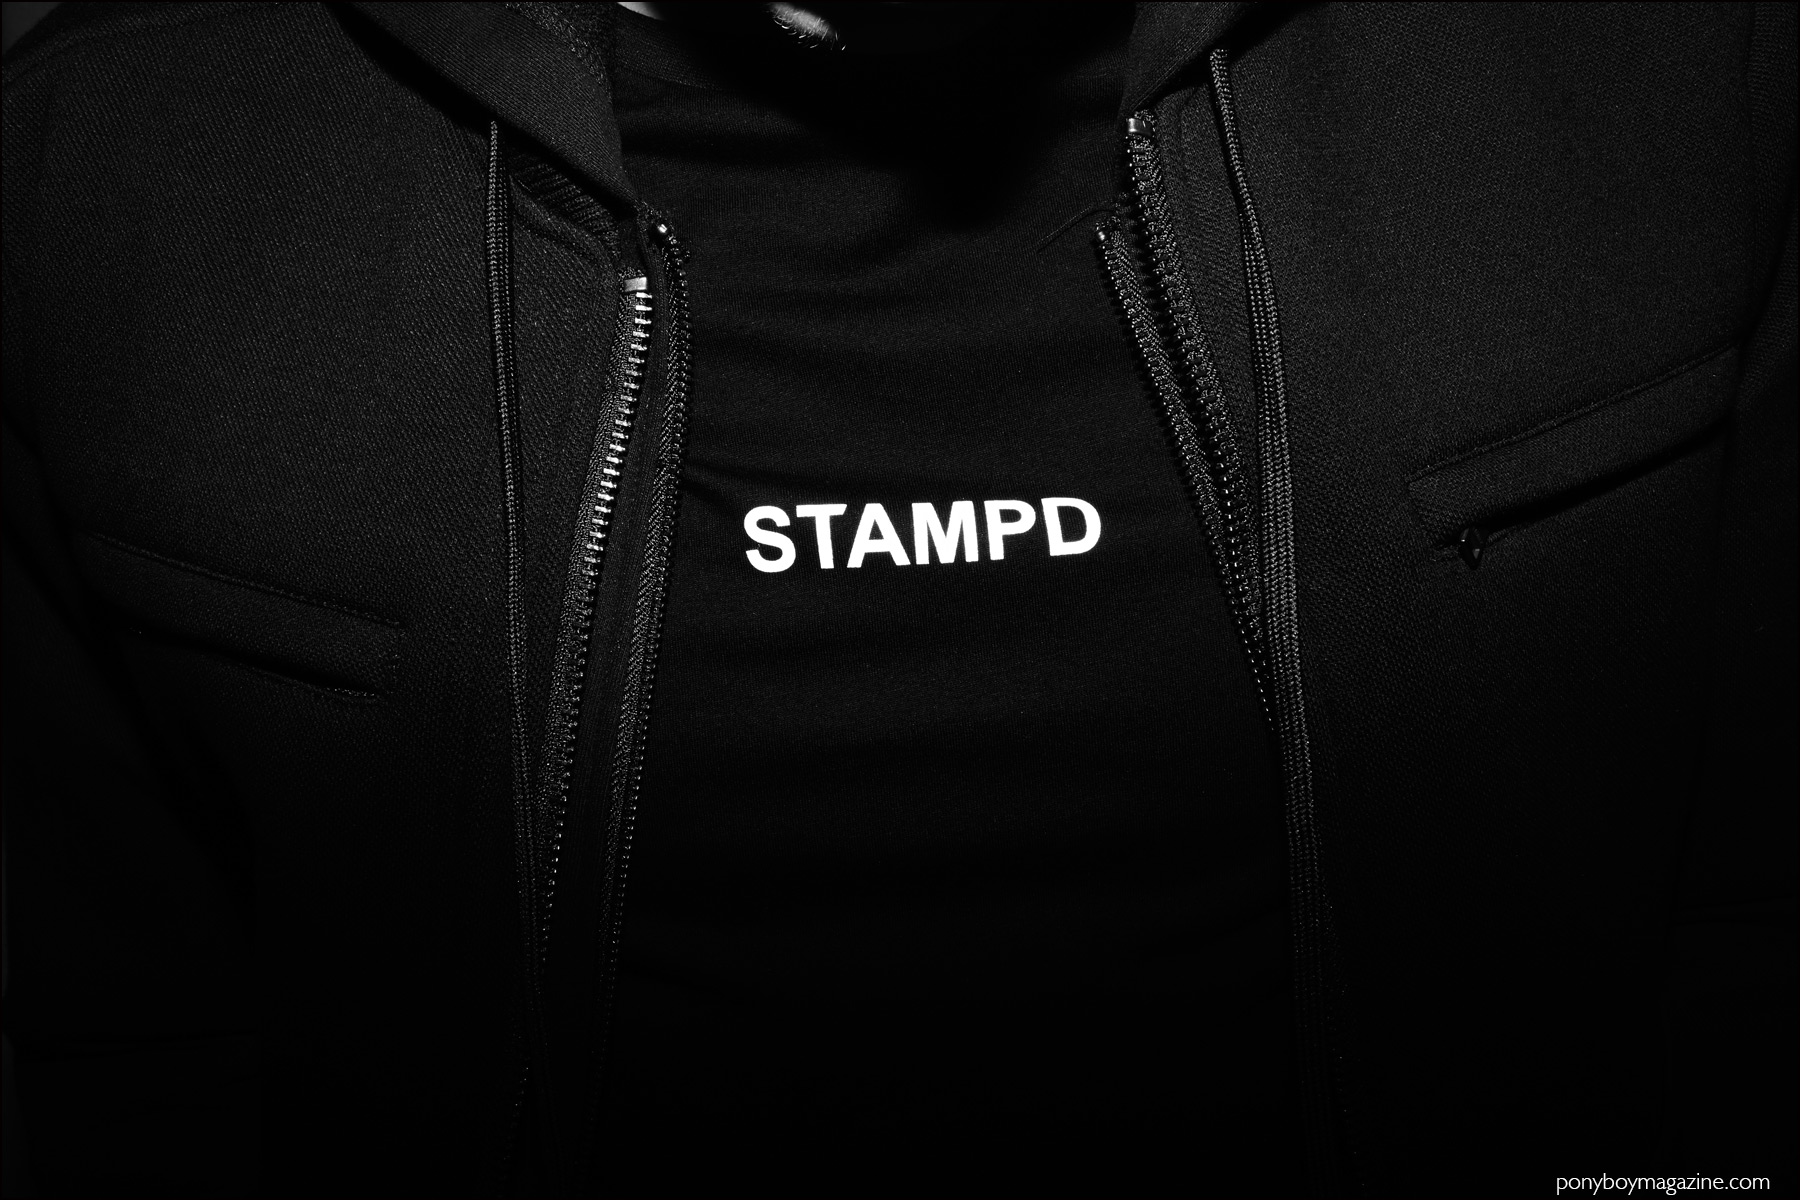 Stampd F/W16 menswear collection by Chris Stamp. Photographed by Alexander Thompson for Ponyboy magazine NY.